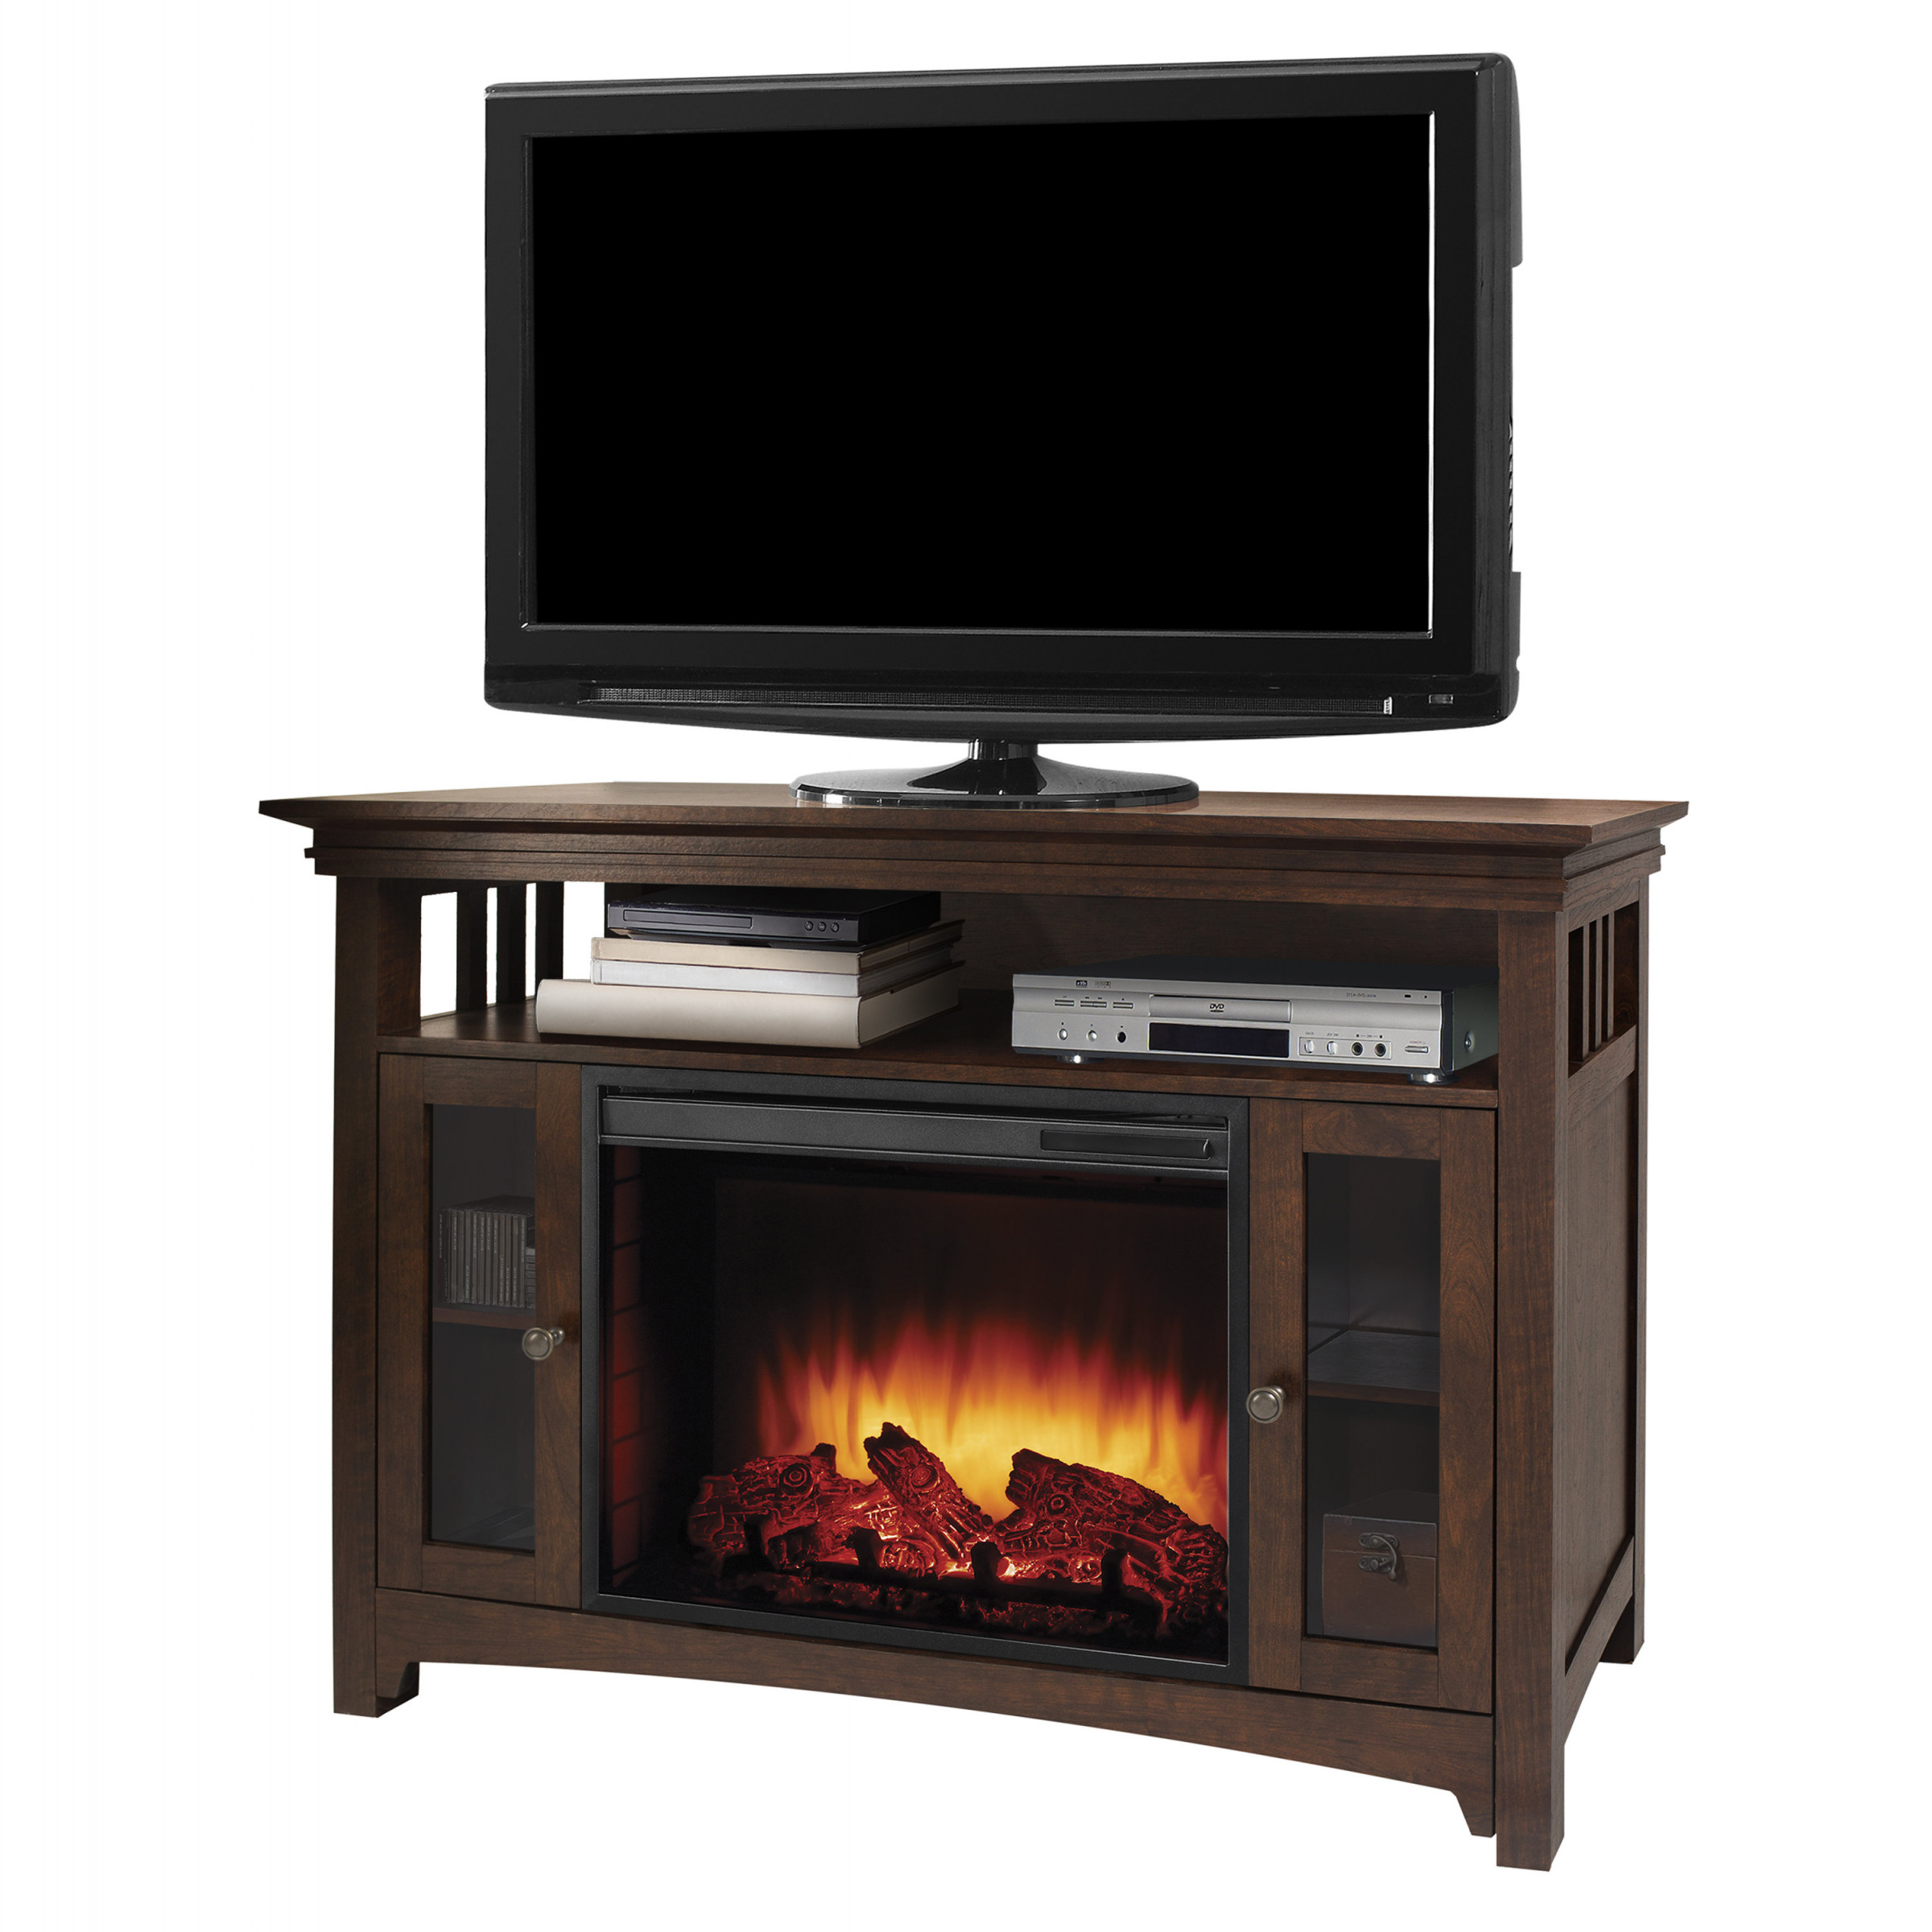 electric fireplace tv stand chic pretty outdoor electric fireplace with heat in latest gas chulha of electric fireplace tv stand